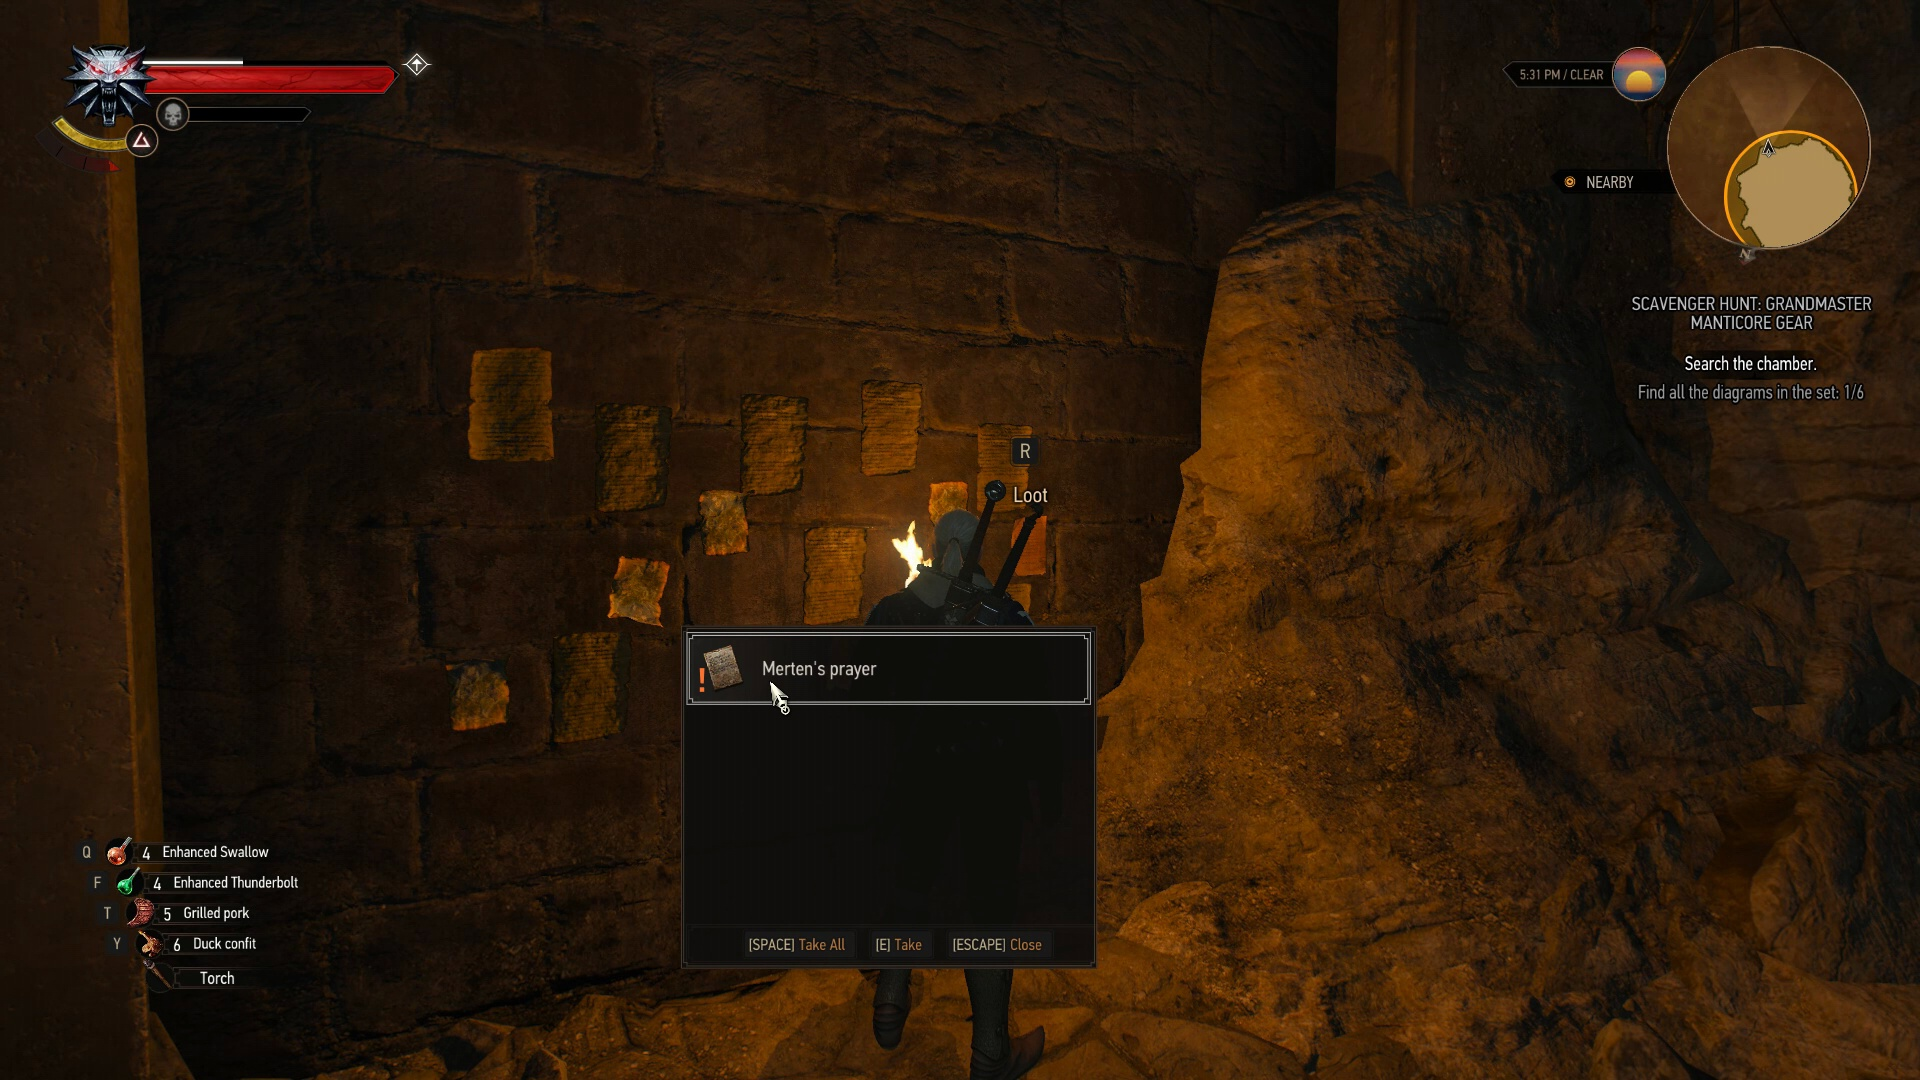 The Witcher 3 How To Get Manticore Gear Set Usgamer Inside A Pc Diagram Cave Youll Find Room With Notes Hung Along Walls Search Far Wall For Mertens Prayer Which Is Written On Back Side Of